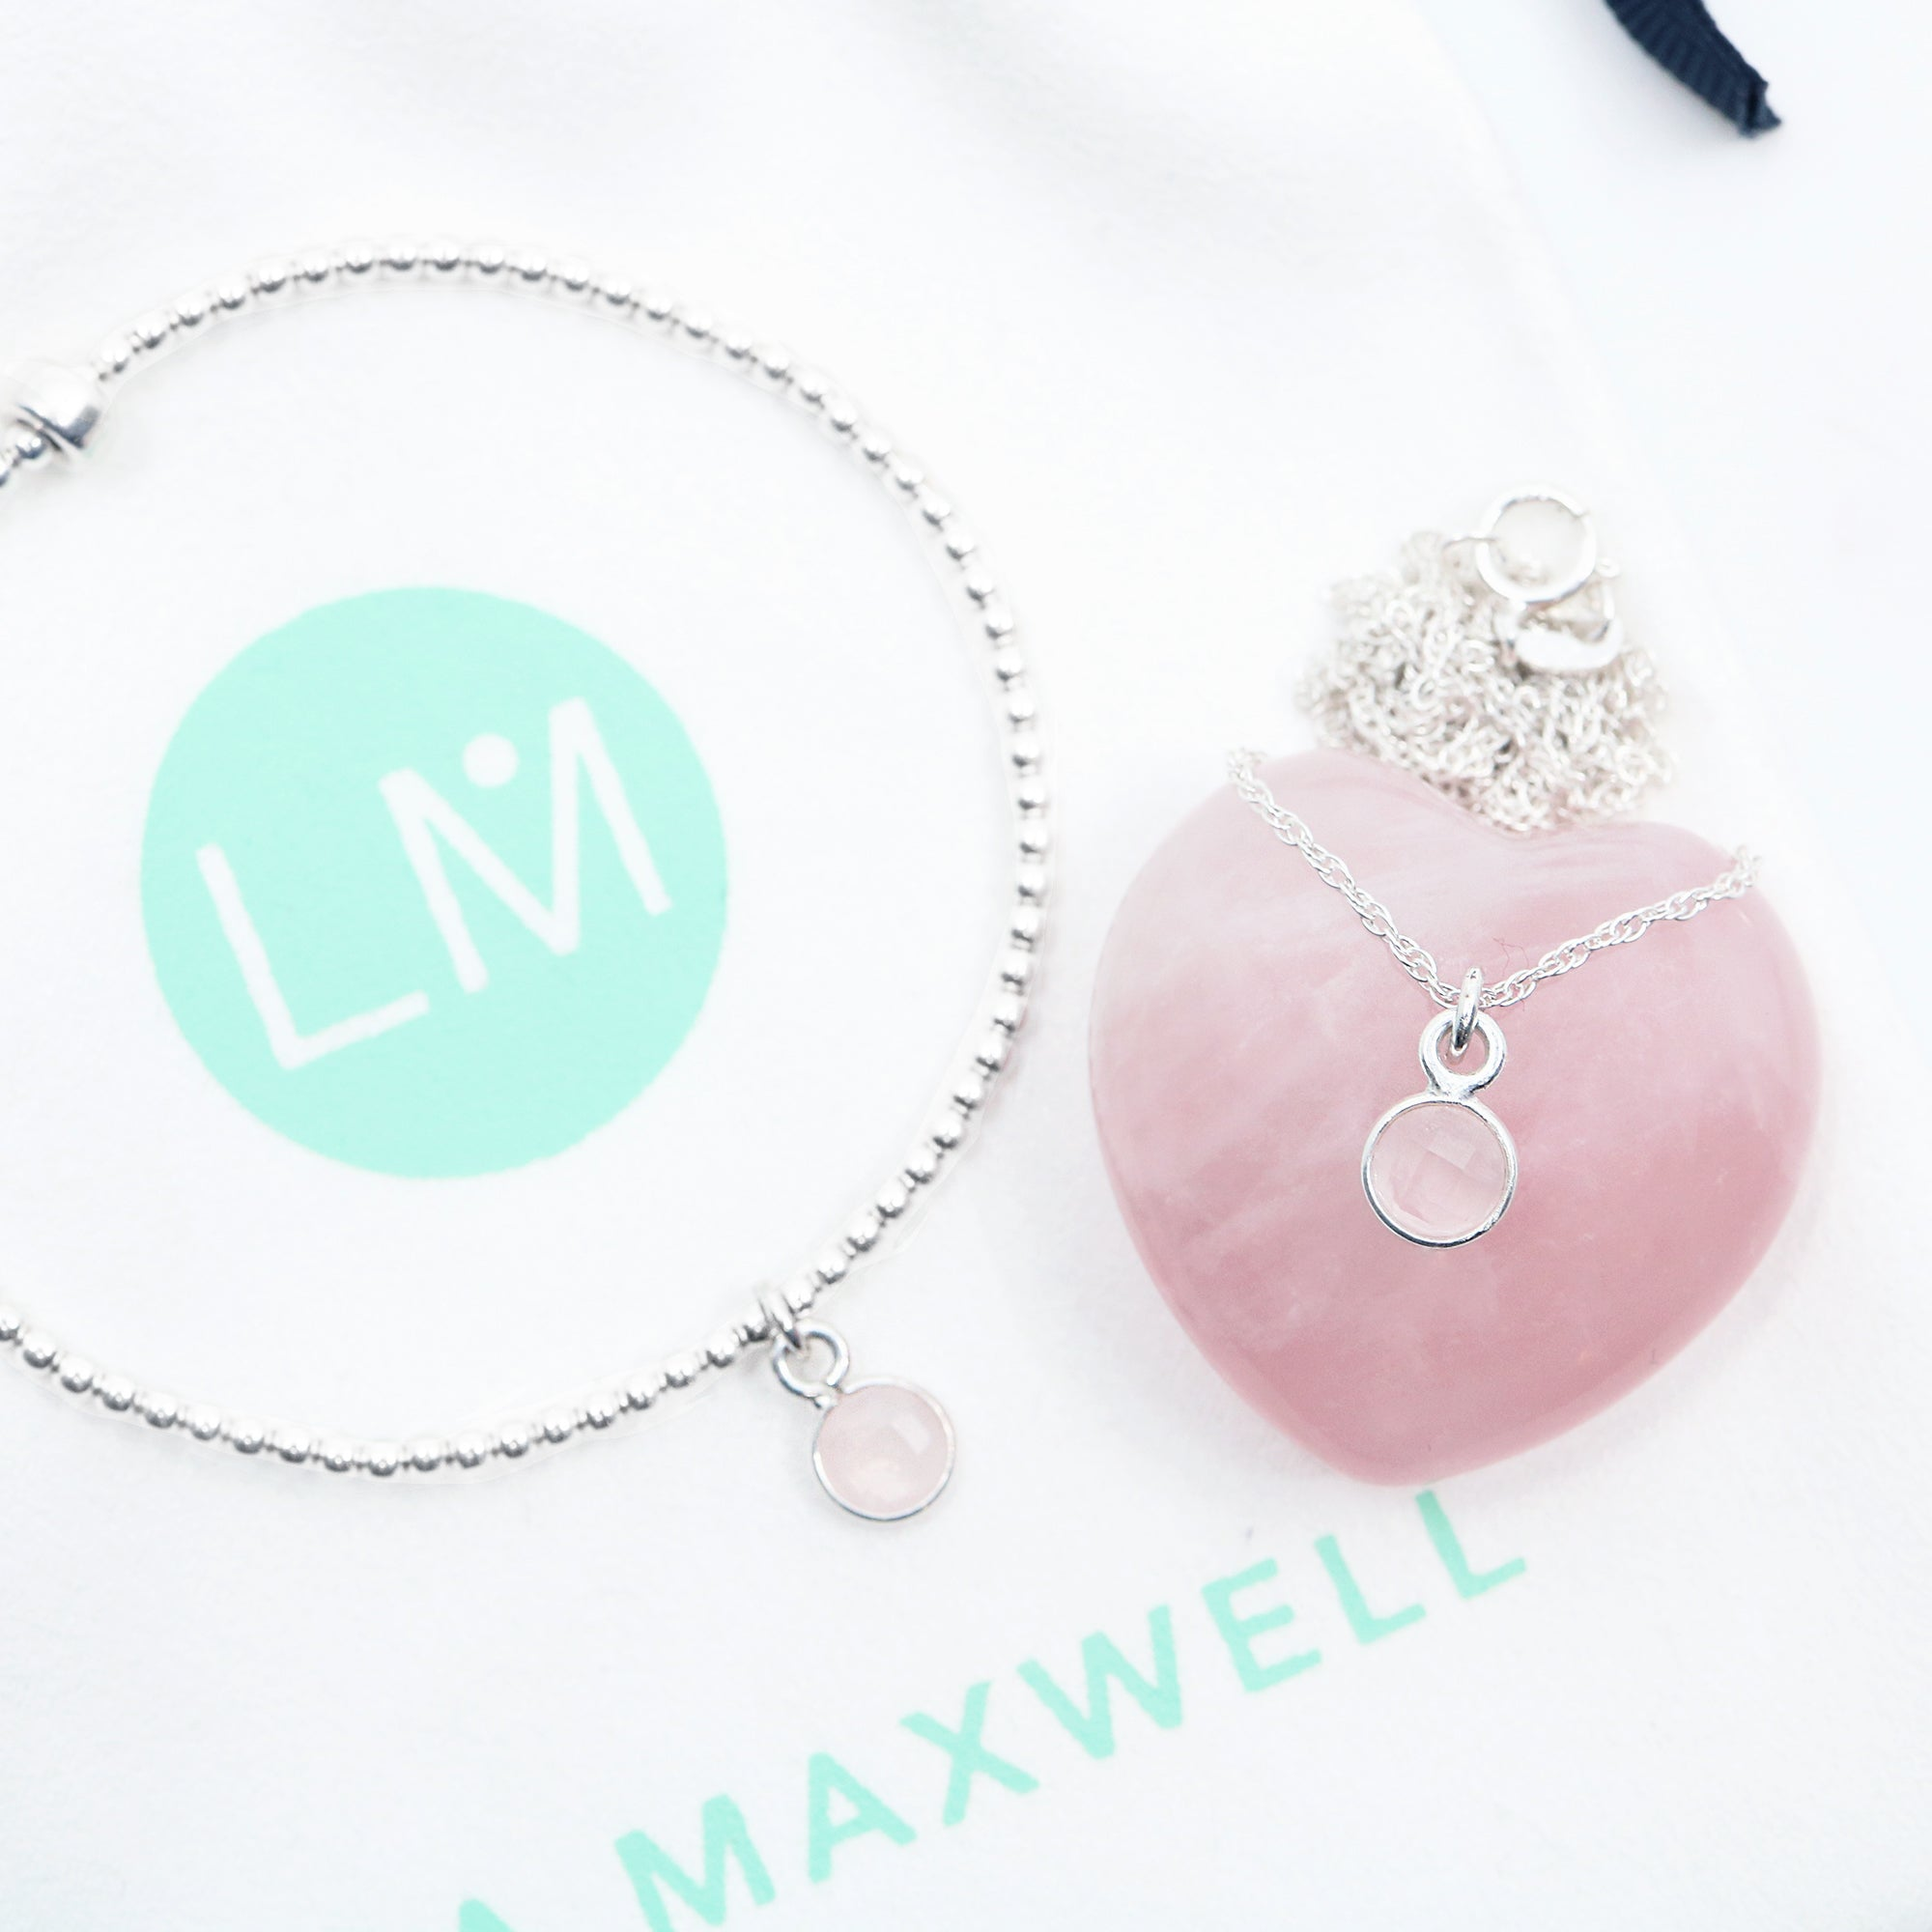 Charmed in Love Mini Gift Set | Rose Quartz